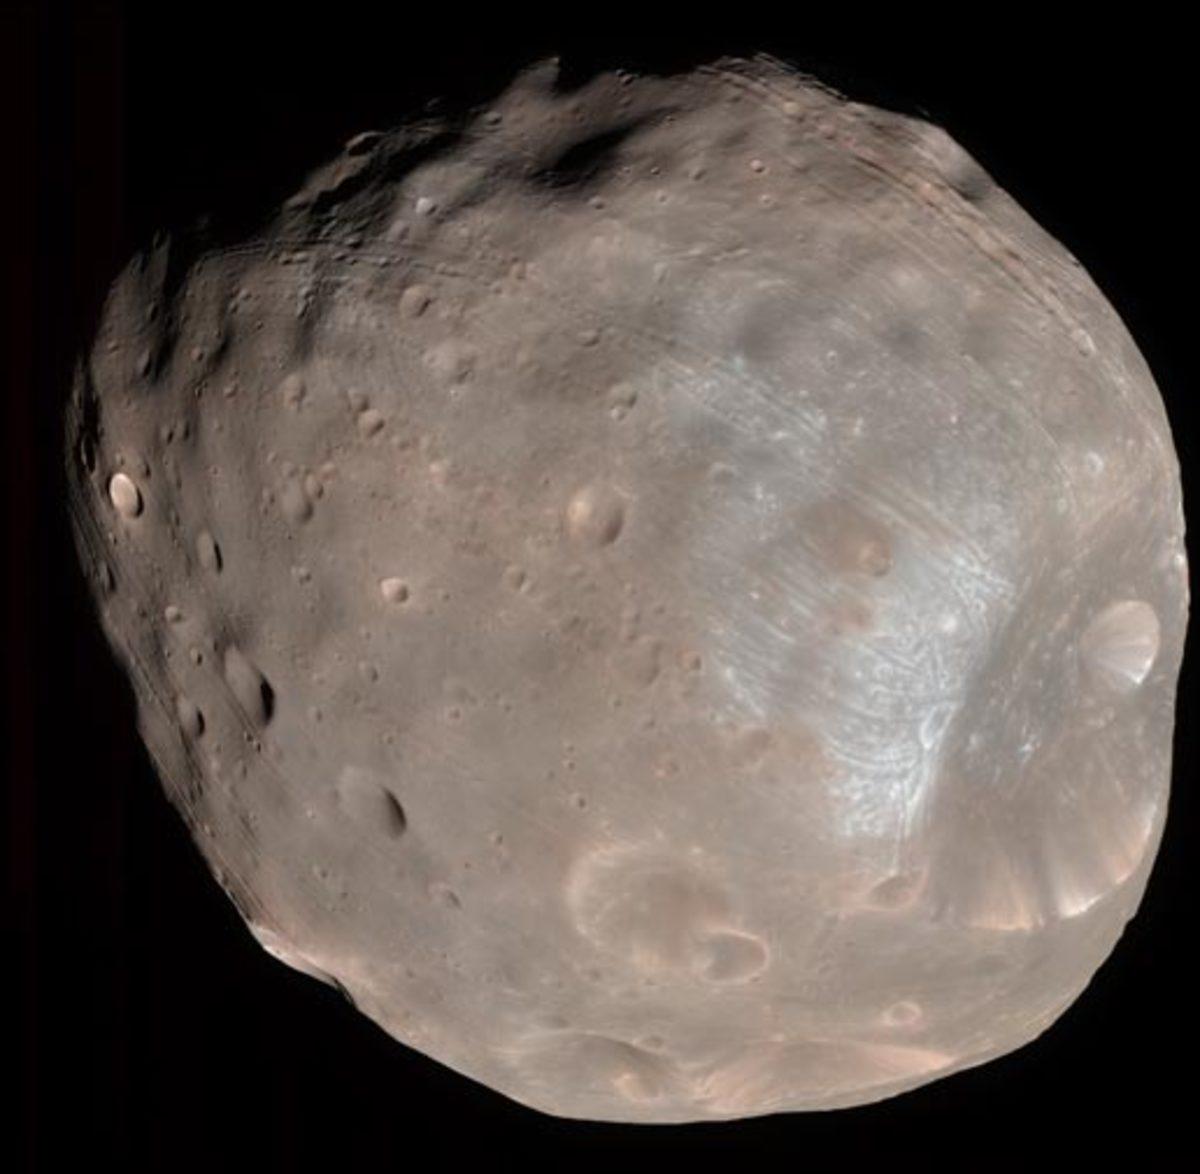 About 17 miles long, Phobos appears to be a captured asteroid circling Mars. In fact, it's caught in a death spiral: if Mars' gravity doesn't tear it apart into a ring, it will crash into the surface in ten million years.